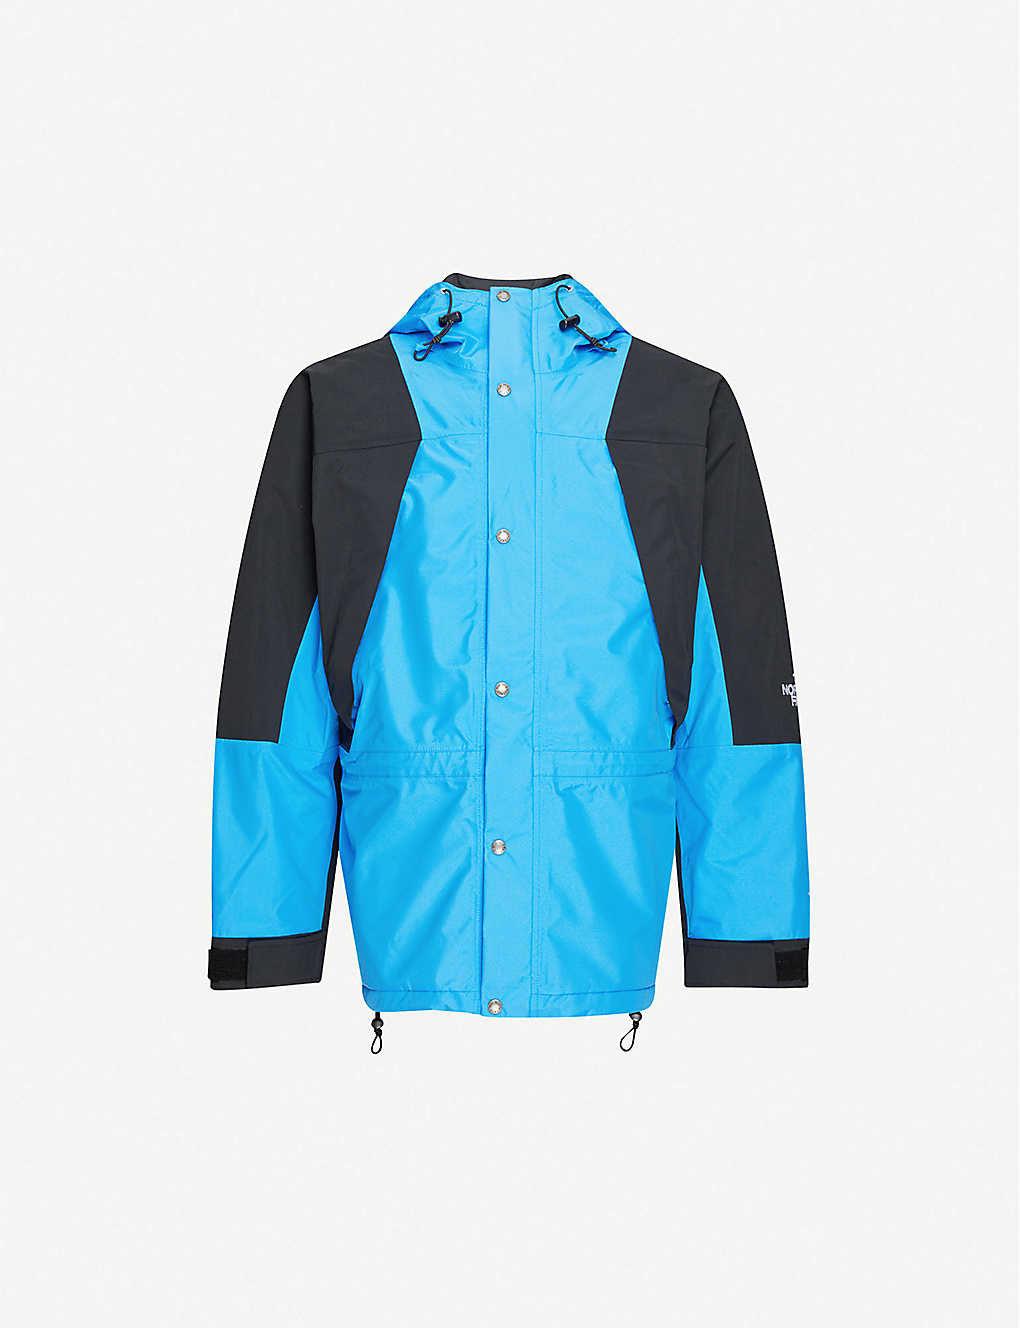 THE NORTH FACE: 1994 Retro Mountain shell jacket